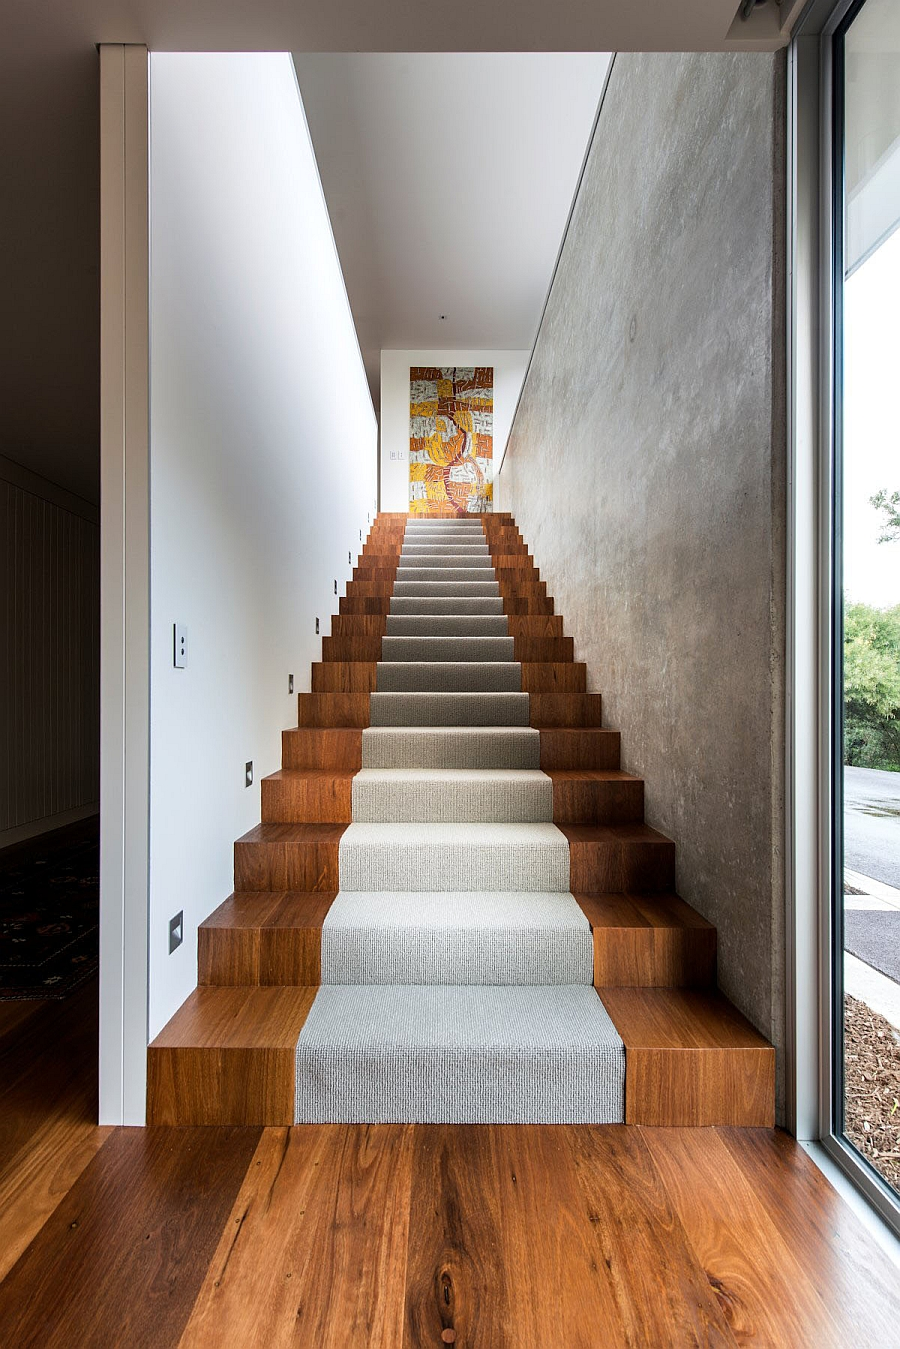 Wooden staircase flanked by concrete walls leads to the top level